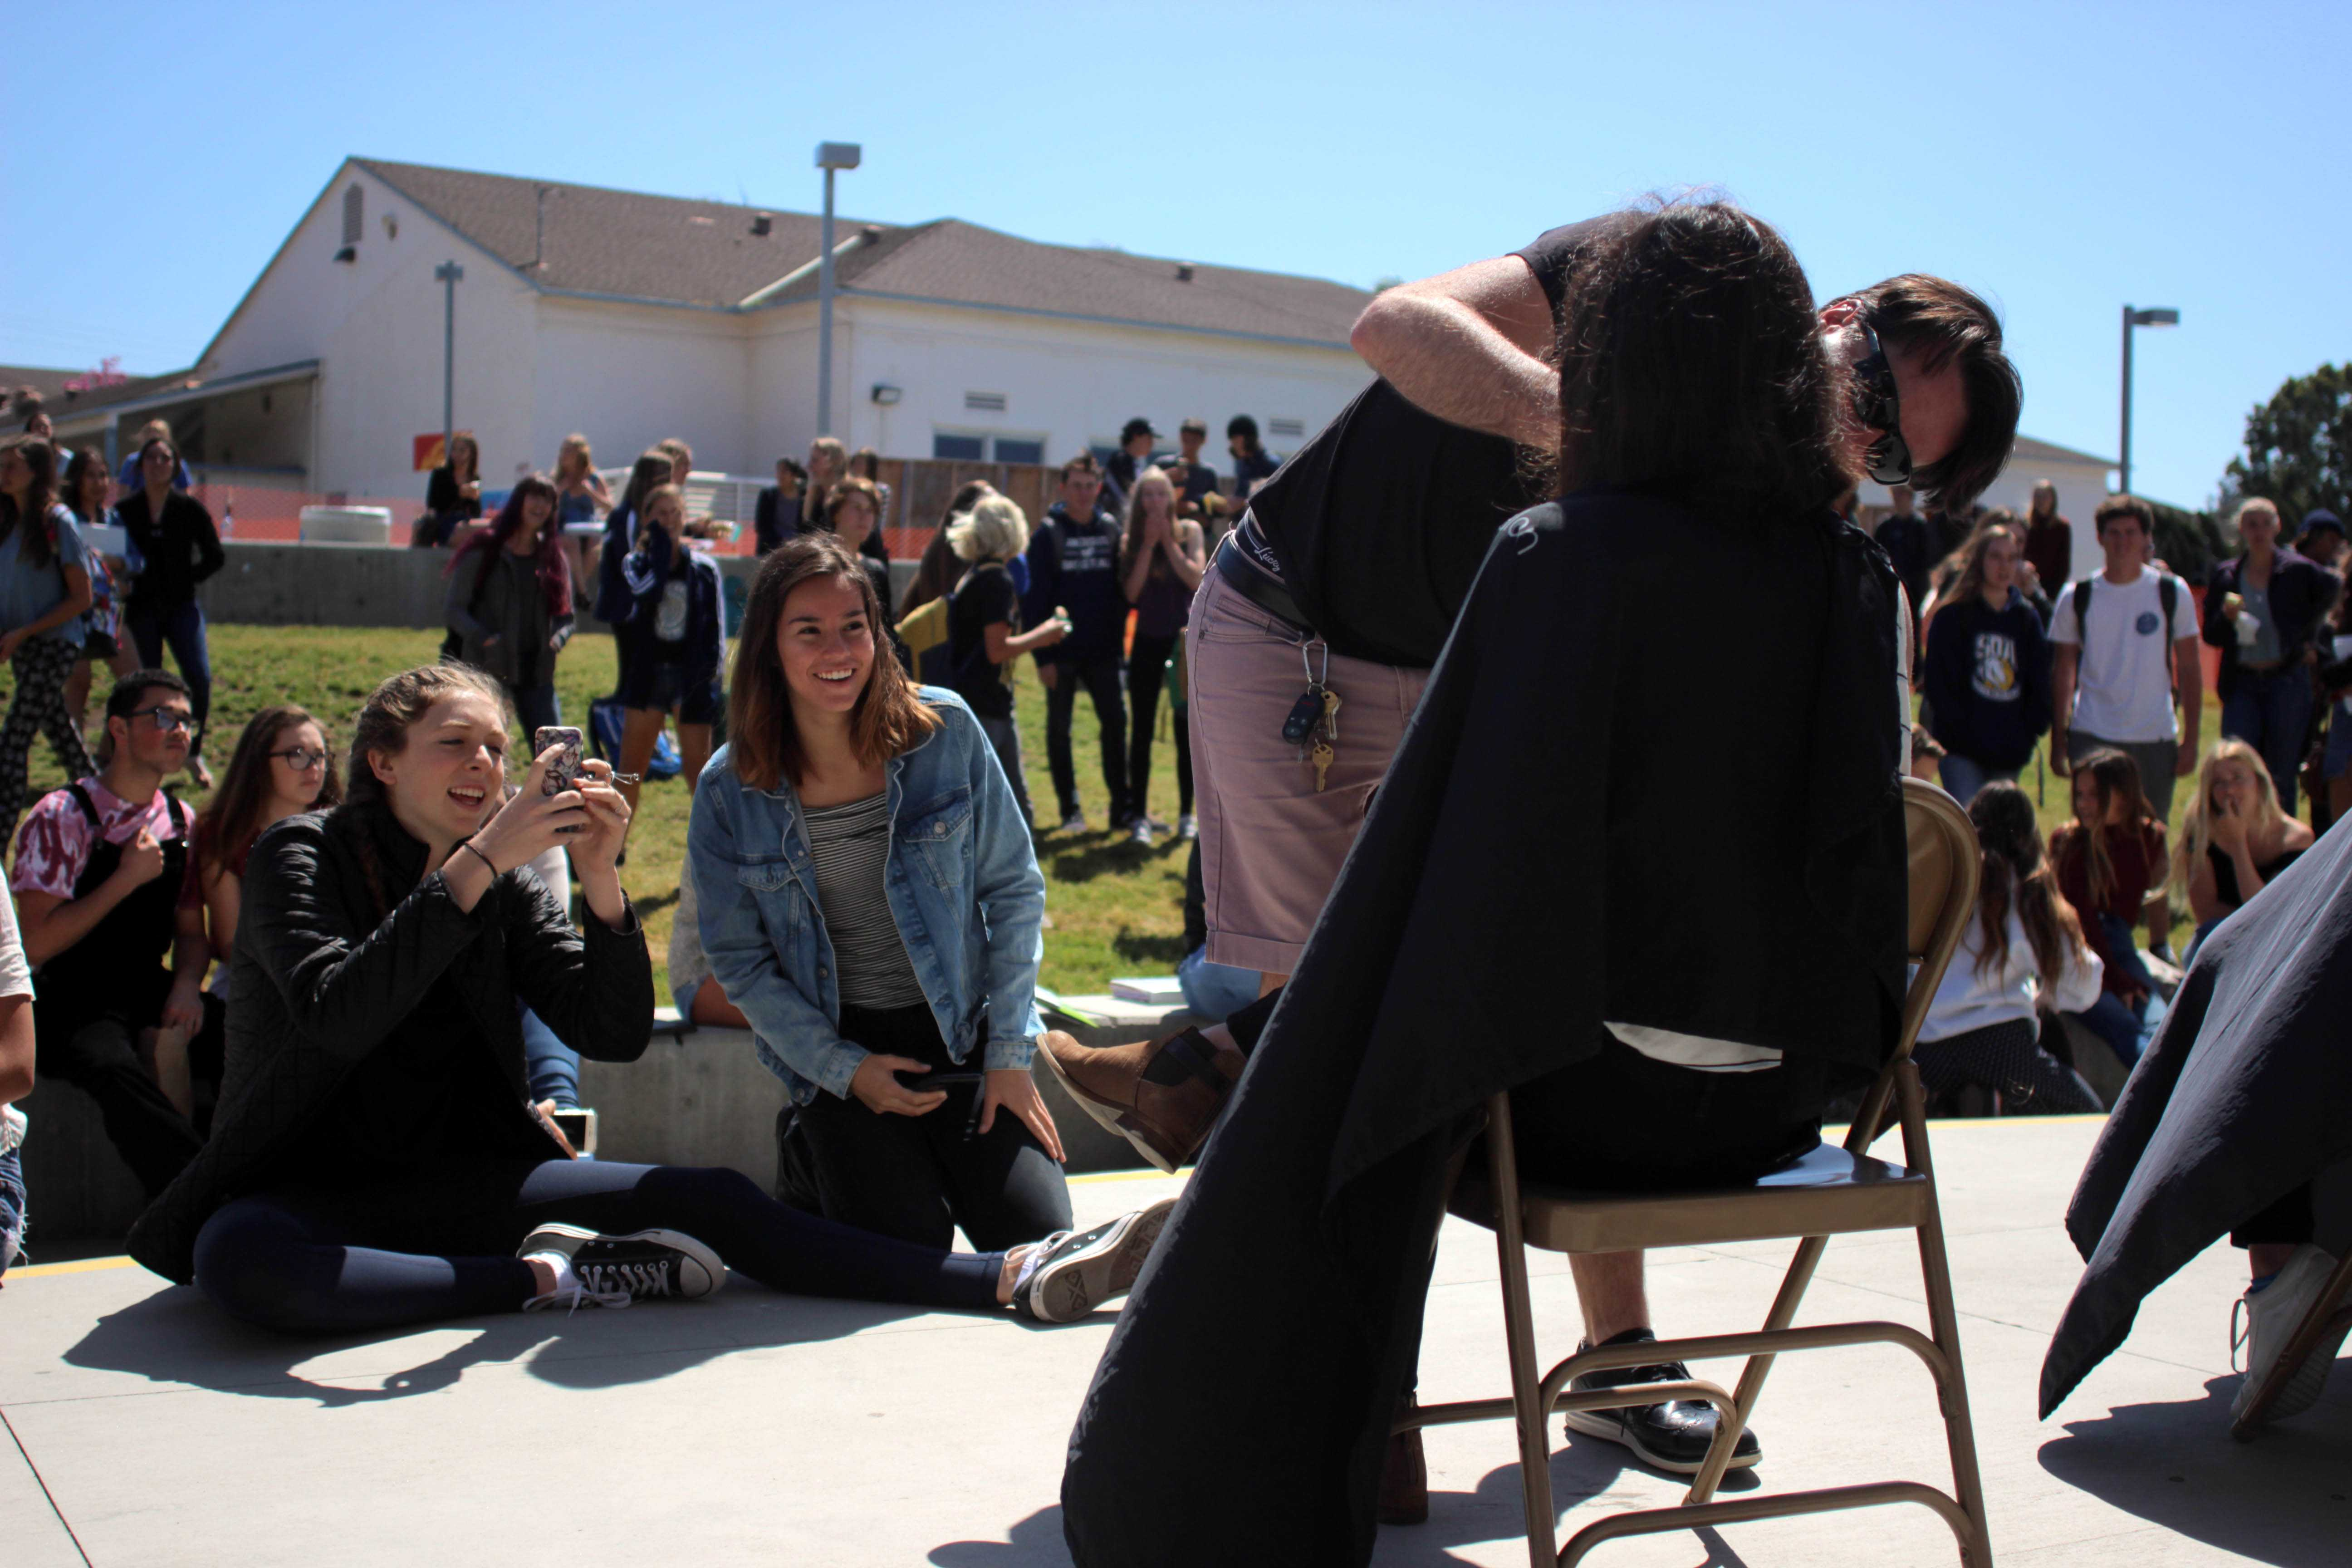 Students excitedly watch as others get their hair cut in front of the PAC.